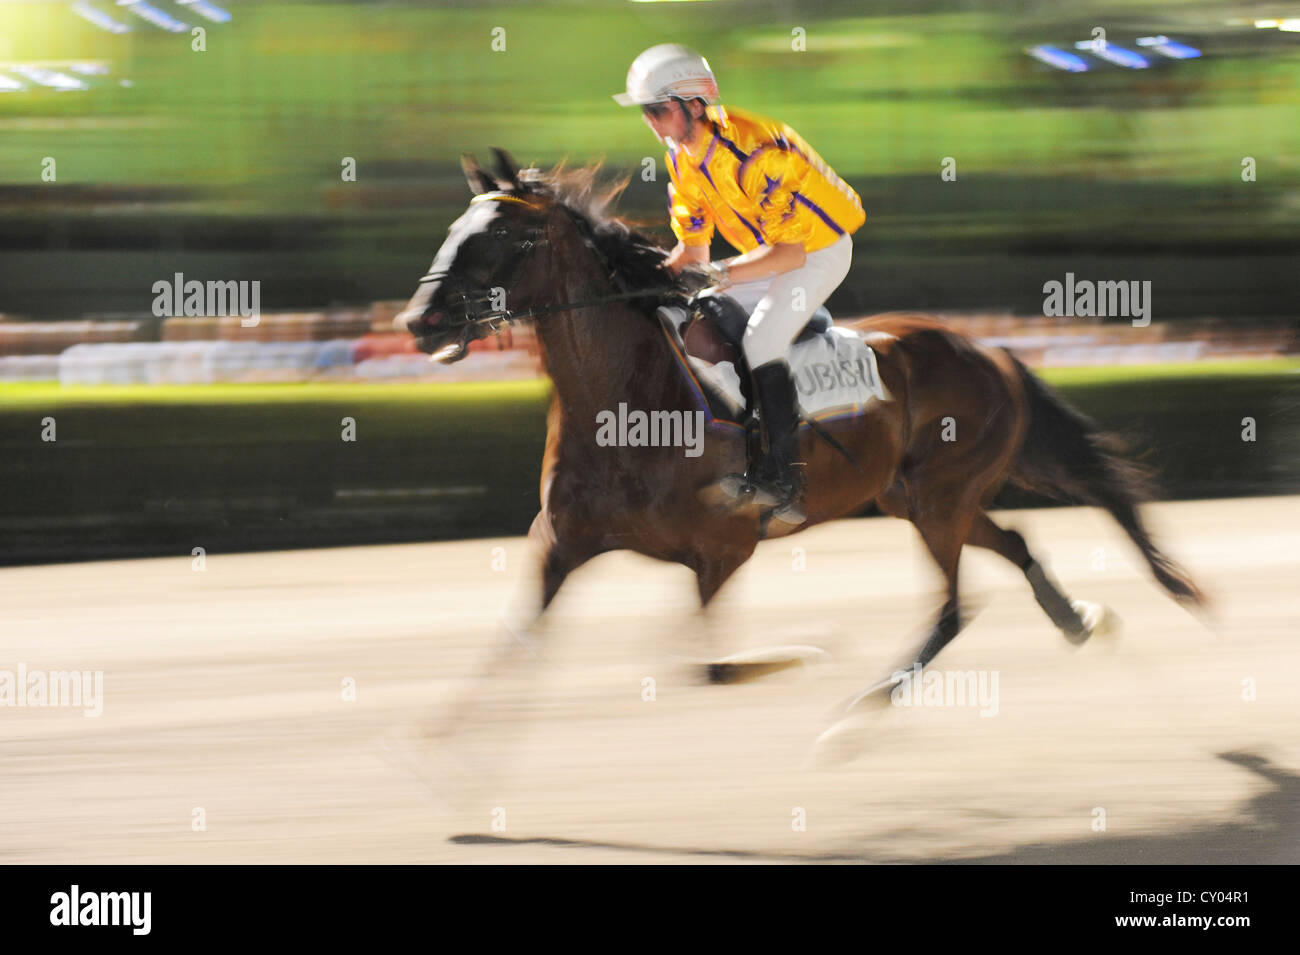 A horse race for amateurs, harness racing track, Baden, Lower Austria, Austria, Europe - Stock Image